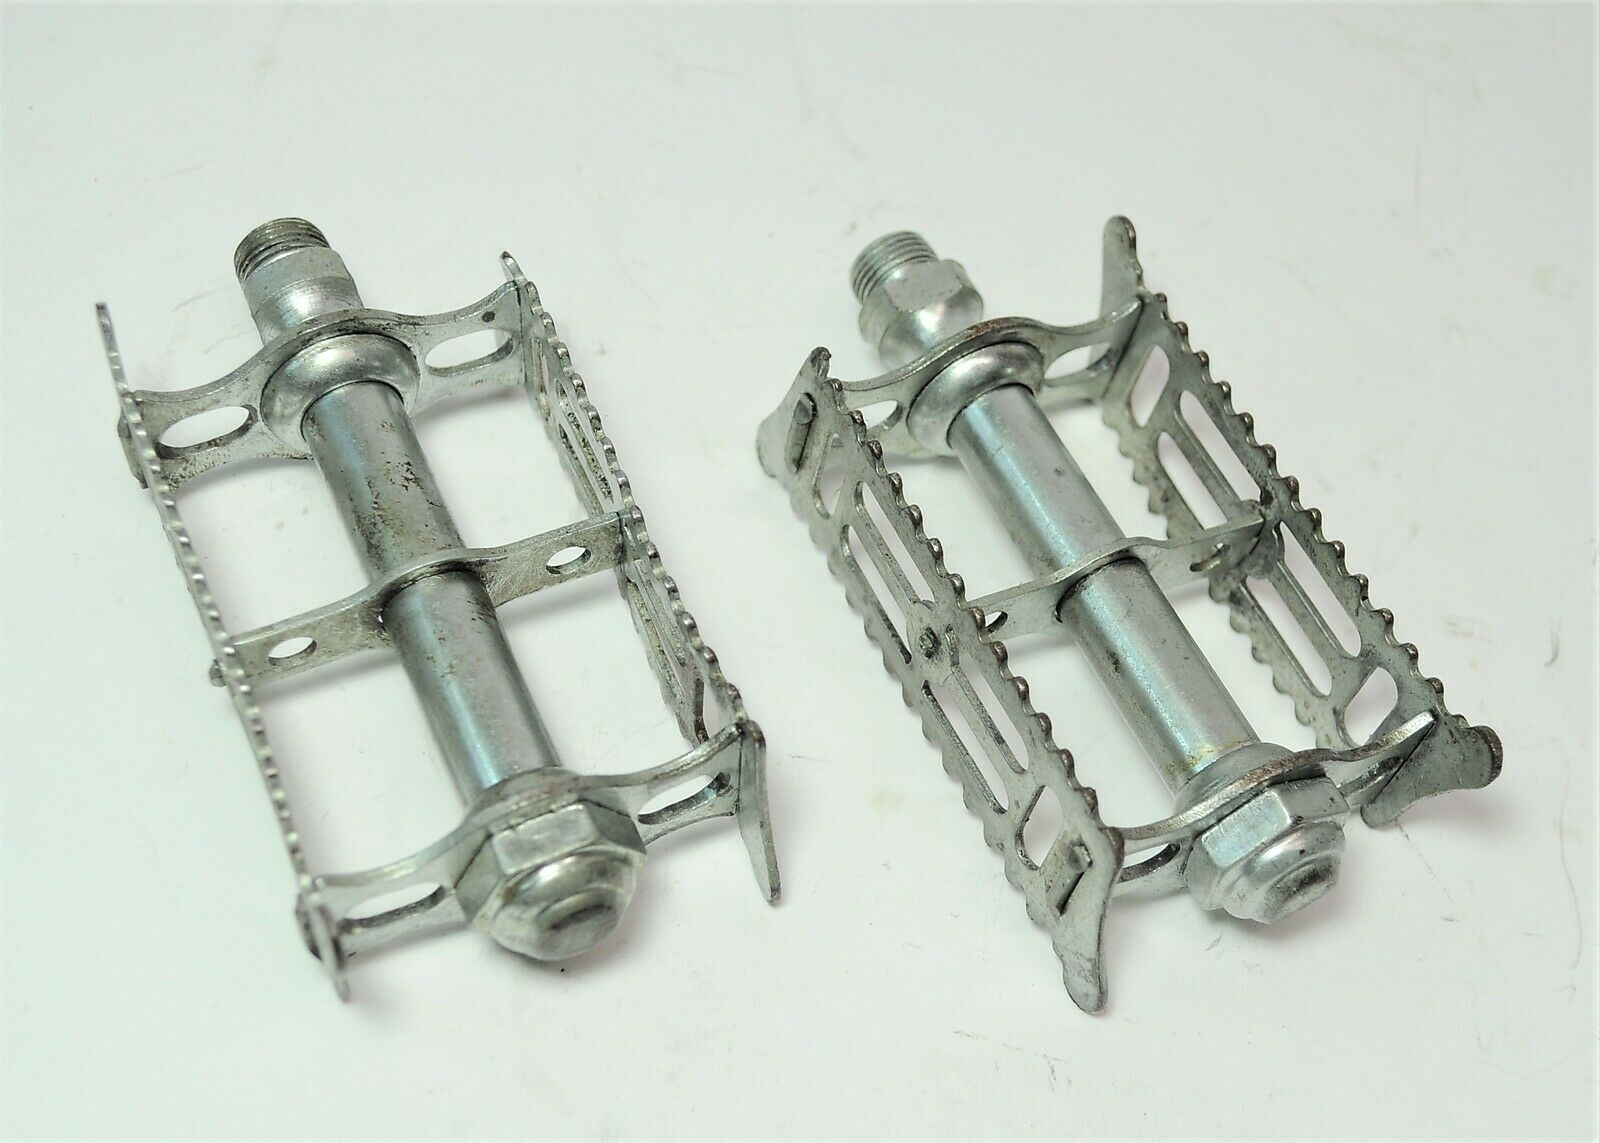 VINTAGE ITALIAN SHEFFIELD BICYCLE ZINK PLATED RAT TRAP PEDALS 9 16 X 20 TPI